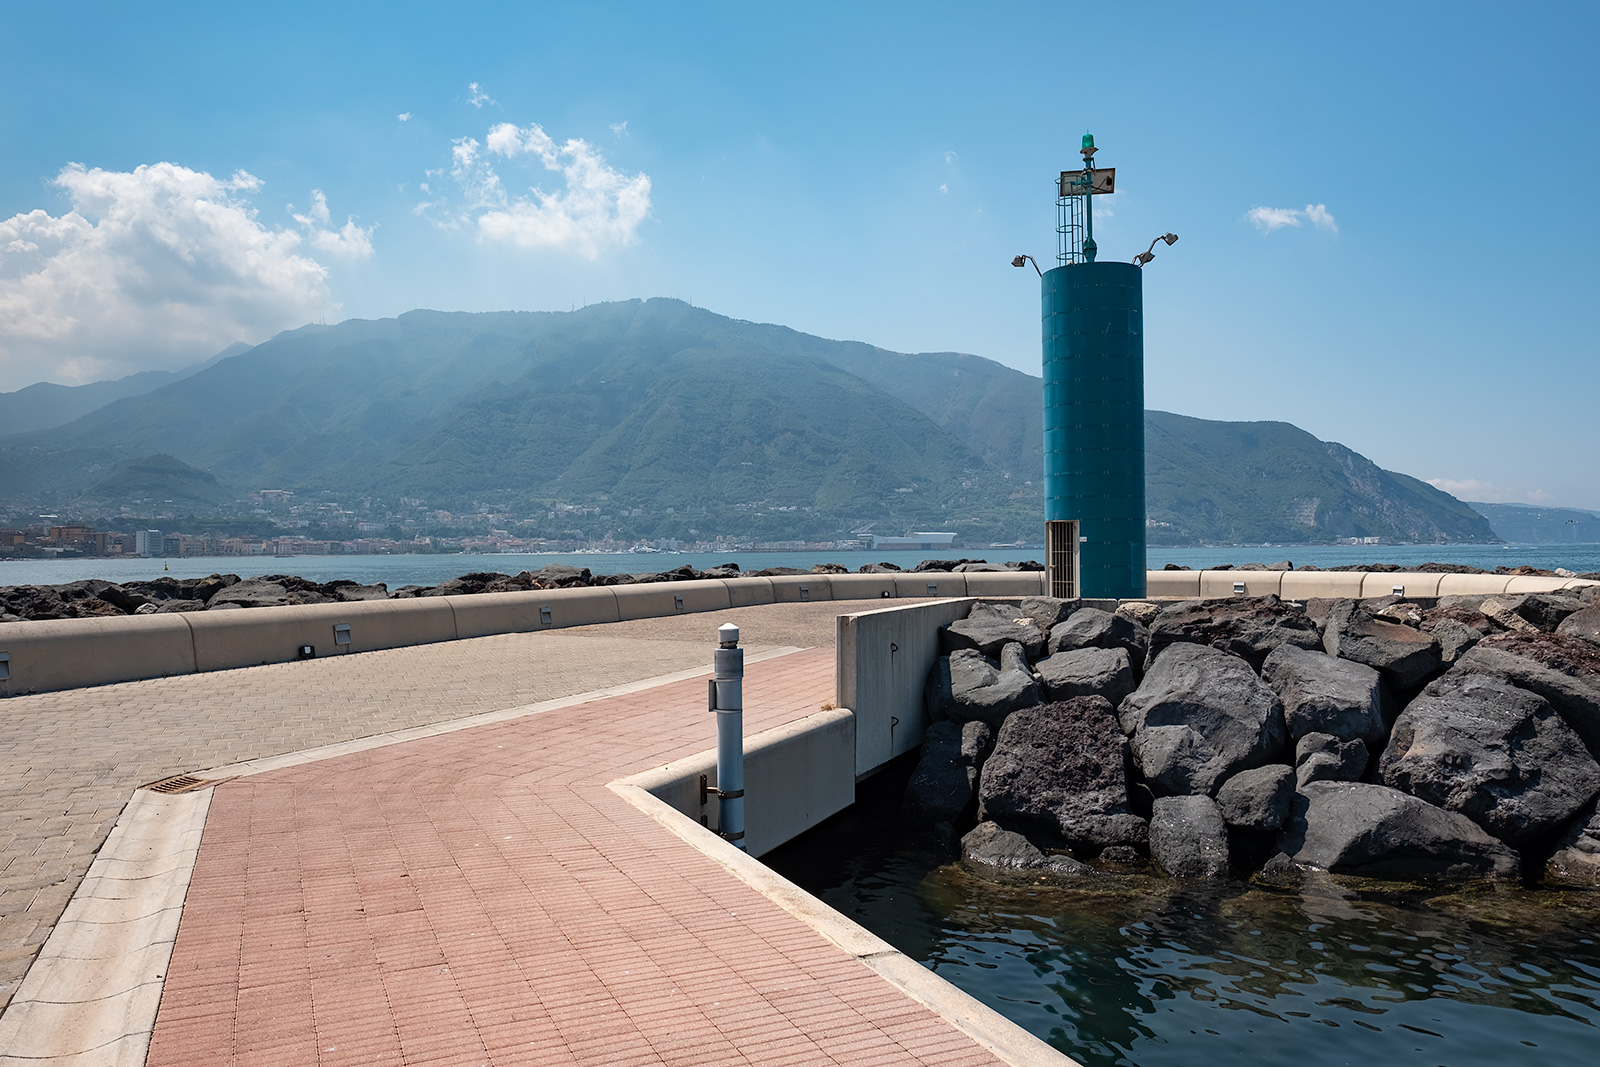 Beacon at entrance to Porto Marina di Stabia Italy with mountains in background, colour landscape photography ©P. Maton 2018 eyeteeth.net